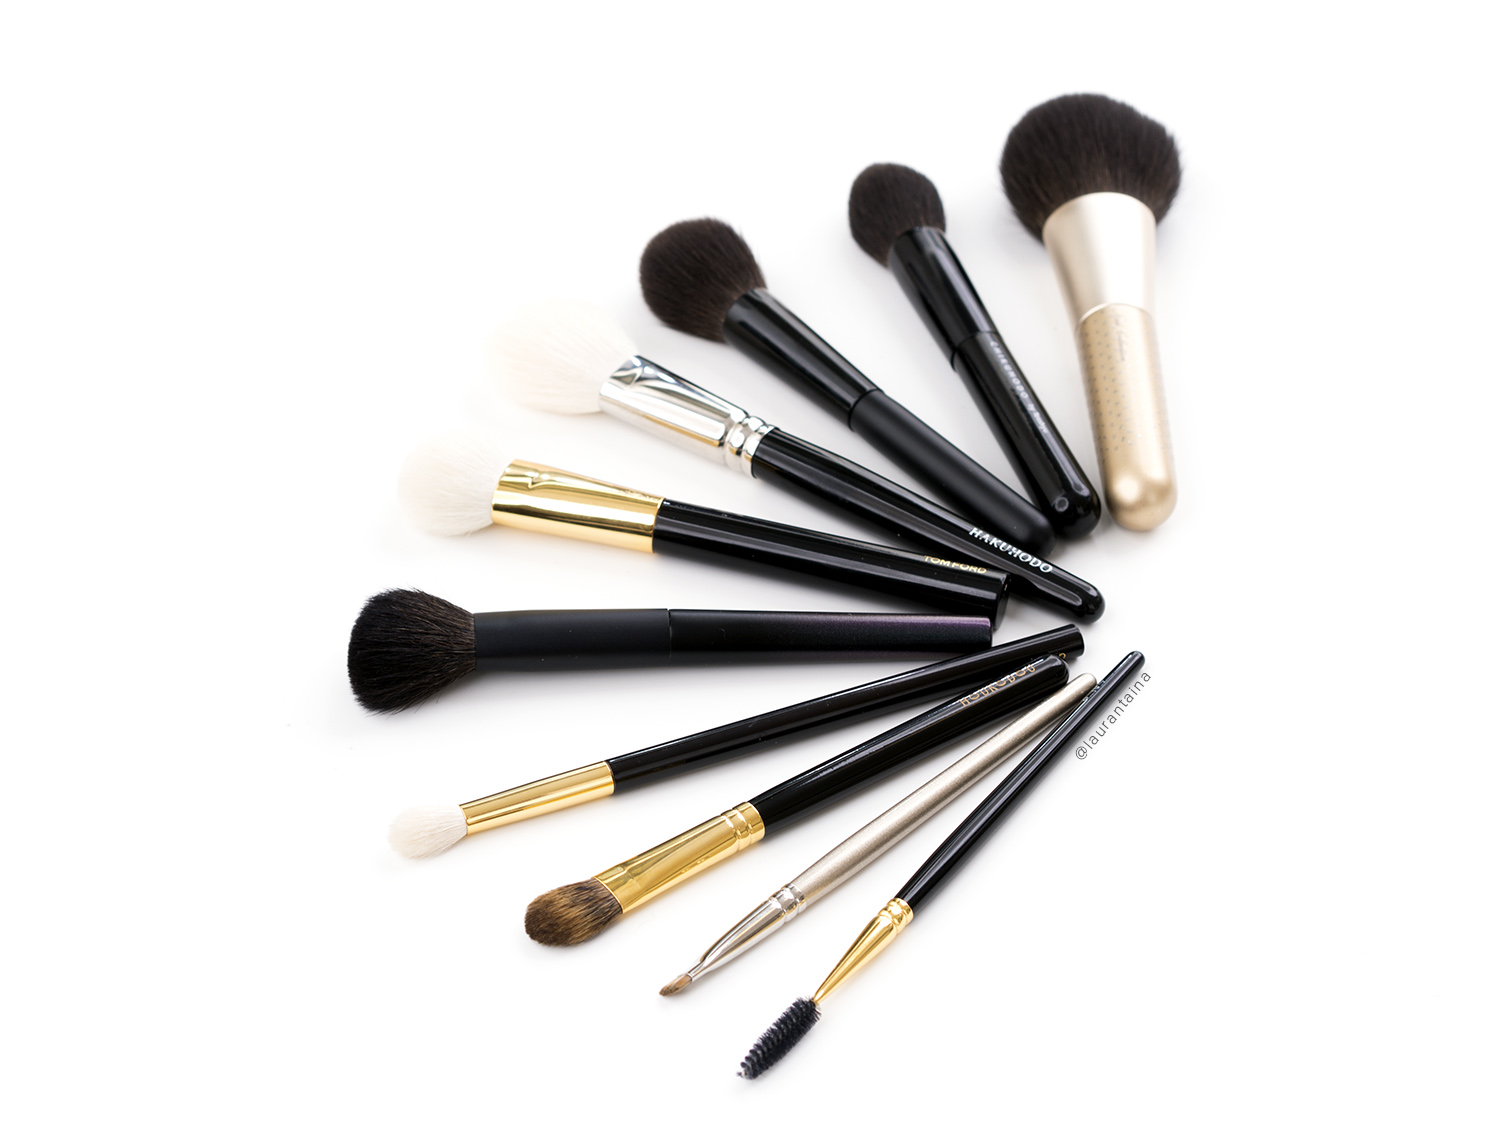 Best Make Up Brushes 2016